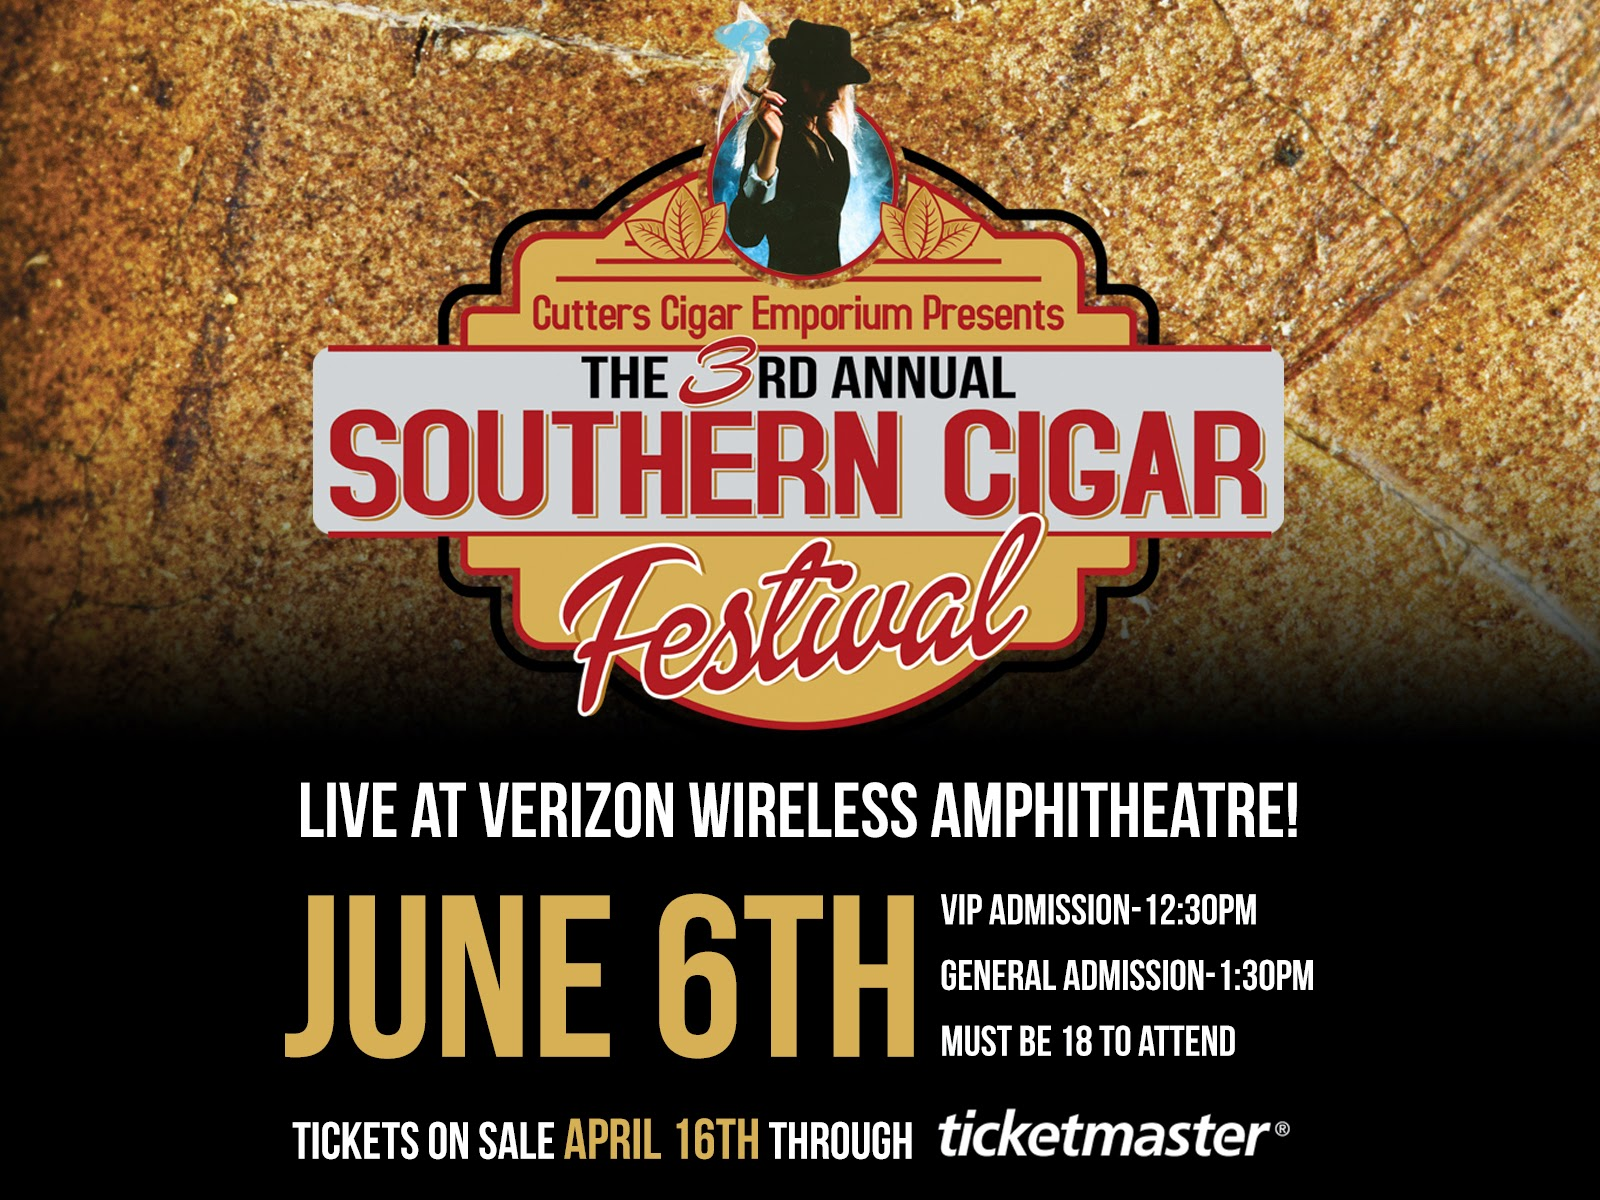 Southern Cigar Festival Preview:  A Look at the Verizon Wireless Amphitheatre